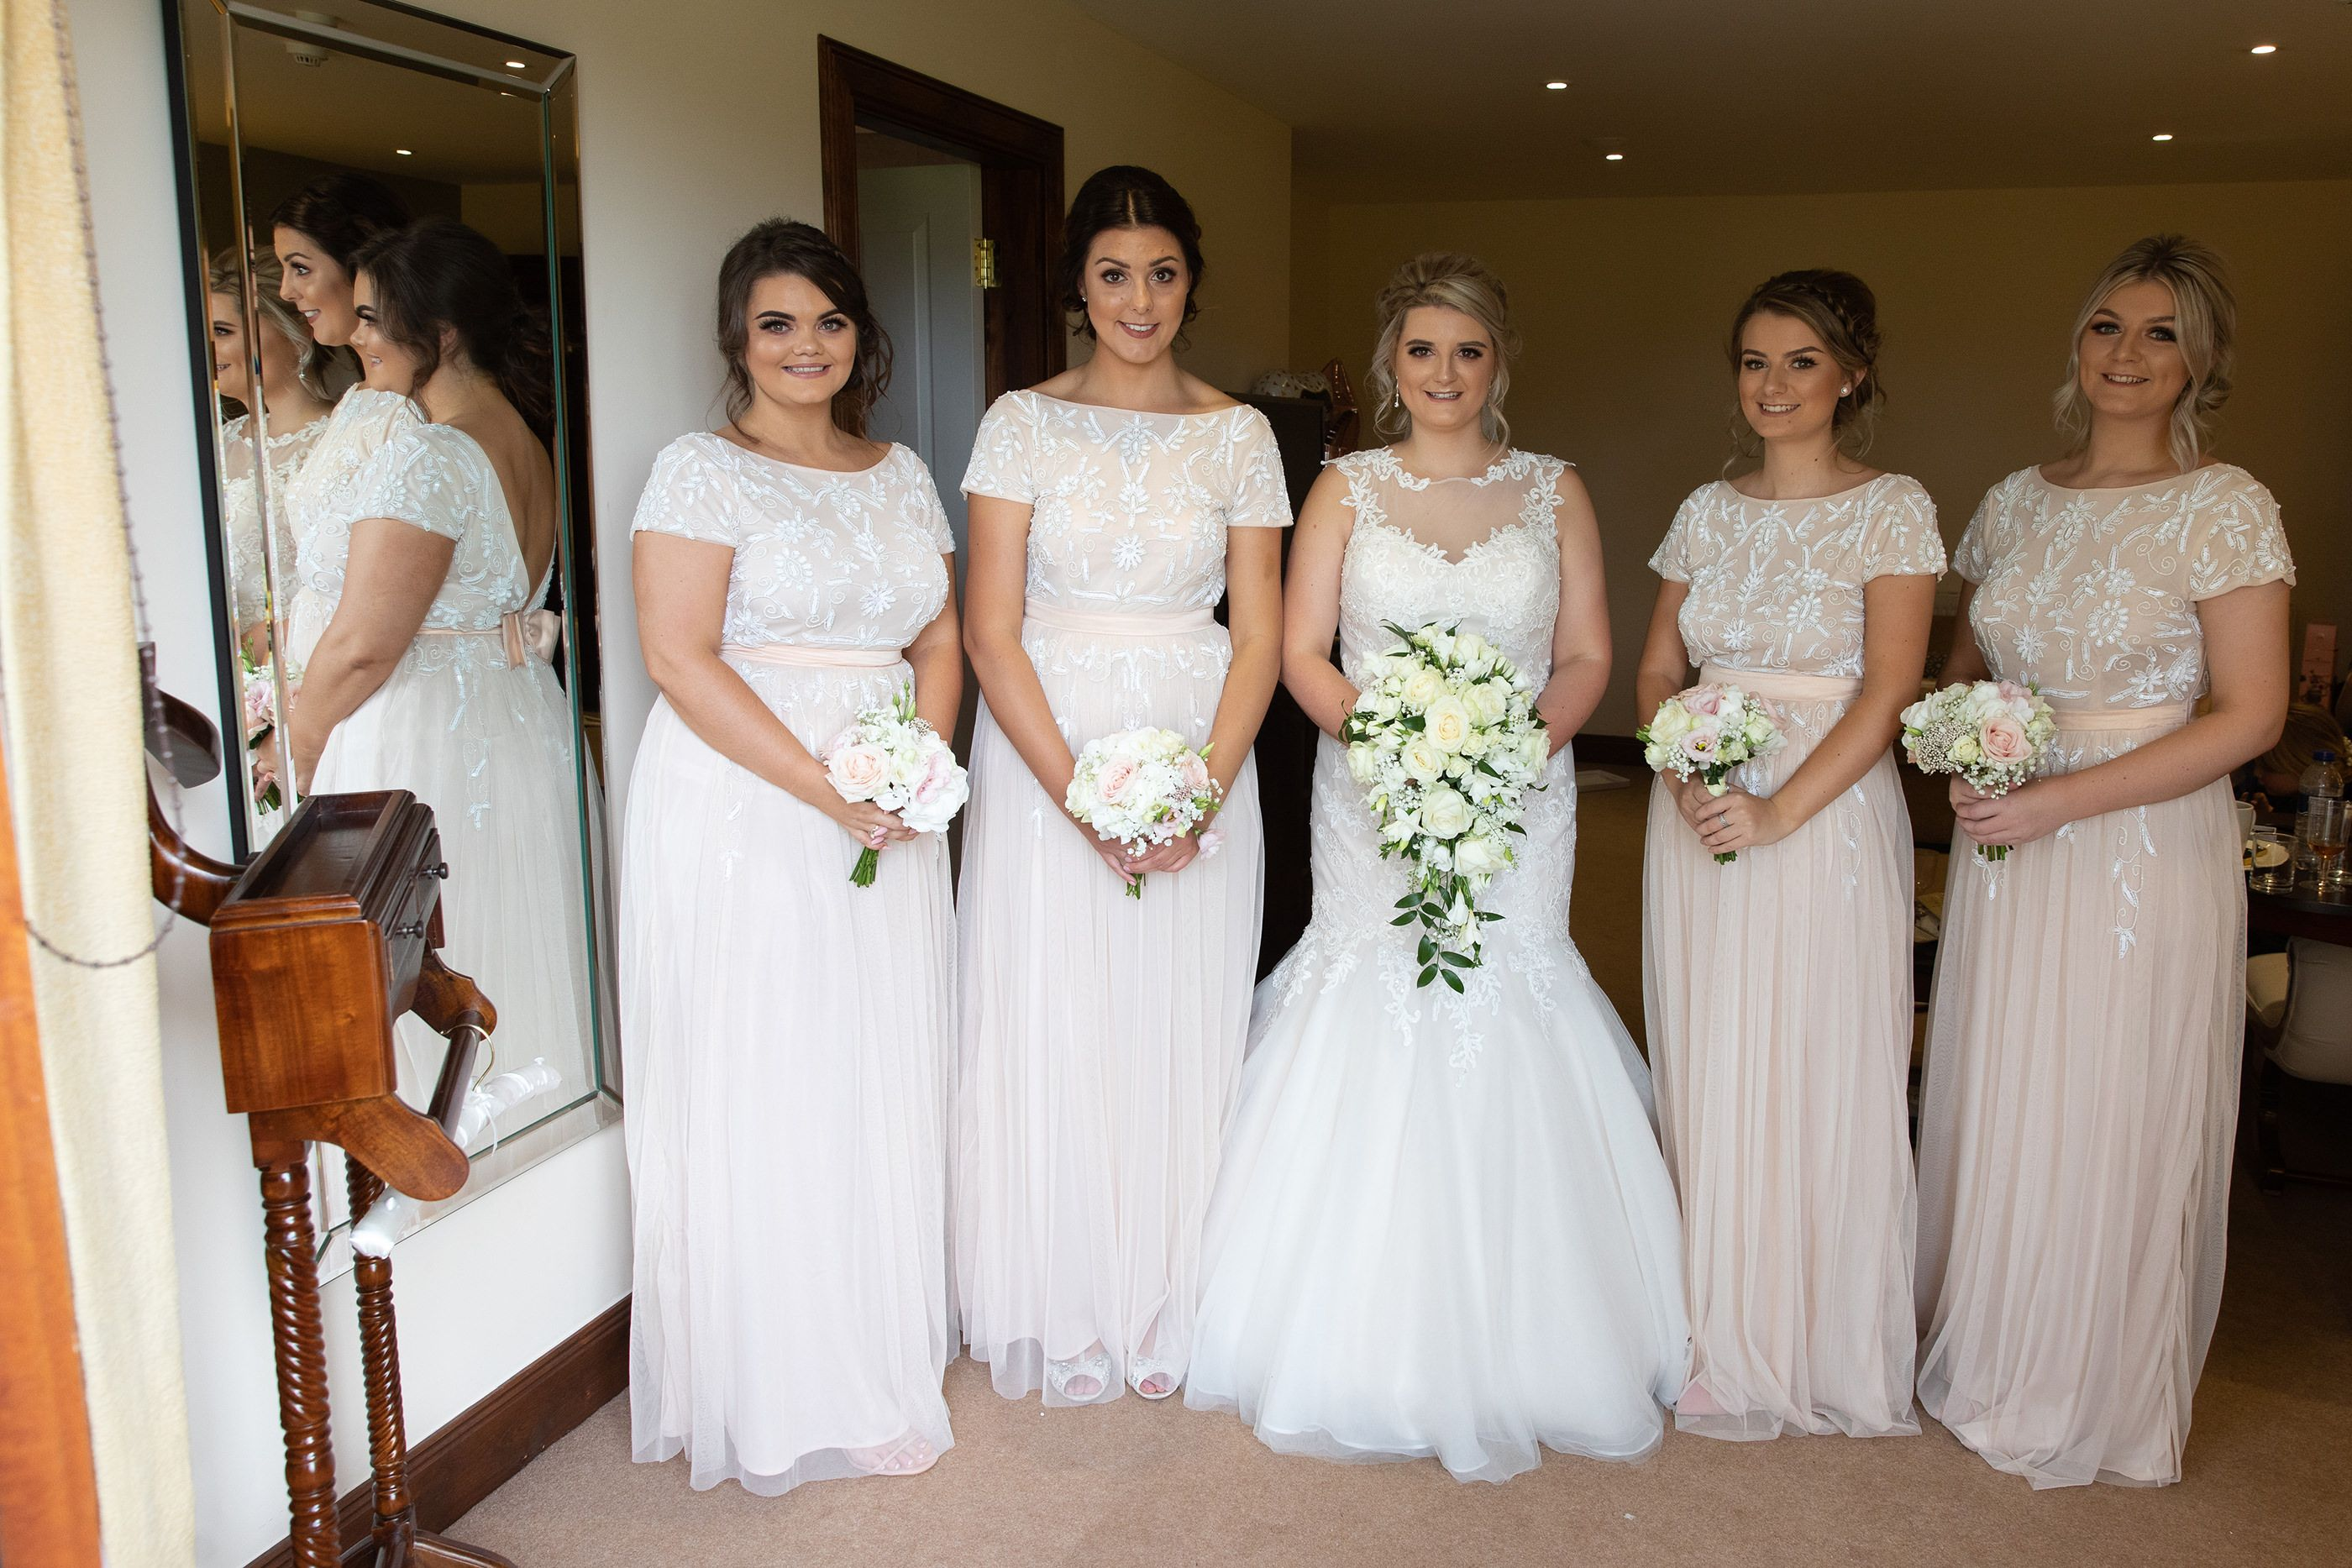 the bride and bridesmaids all ready for the wedding